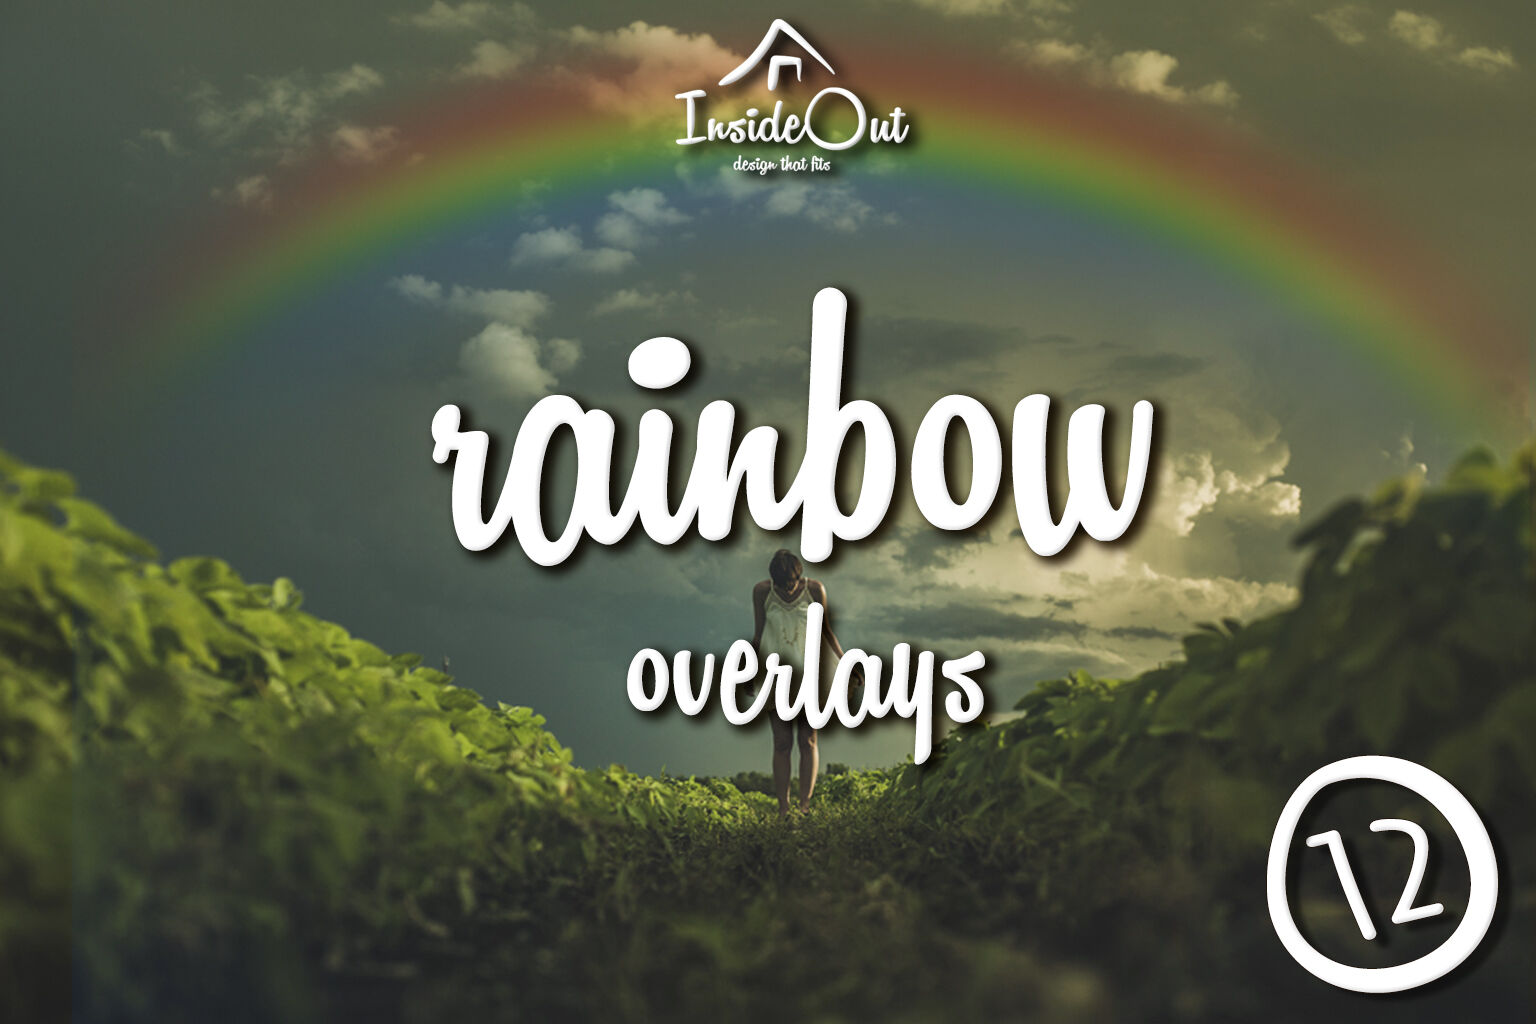 Overlays photoshop clipart picture free stock Rainbow Overlay for Photoshop. Rainbow Backdrop Photo ... picture free stock